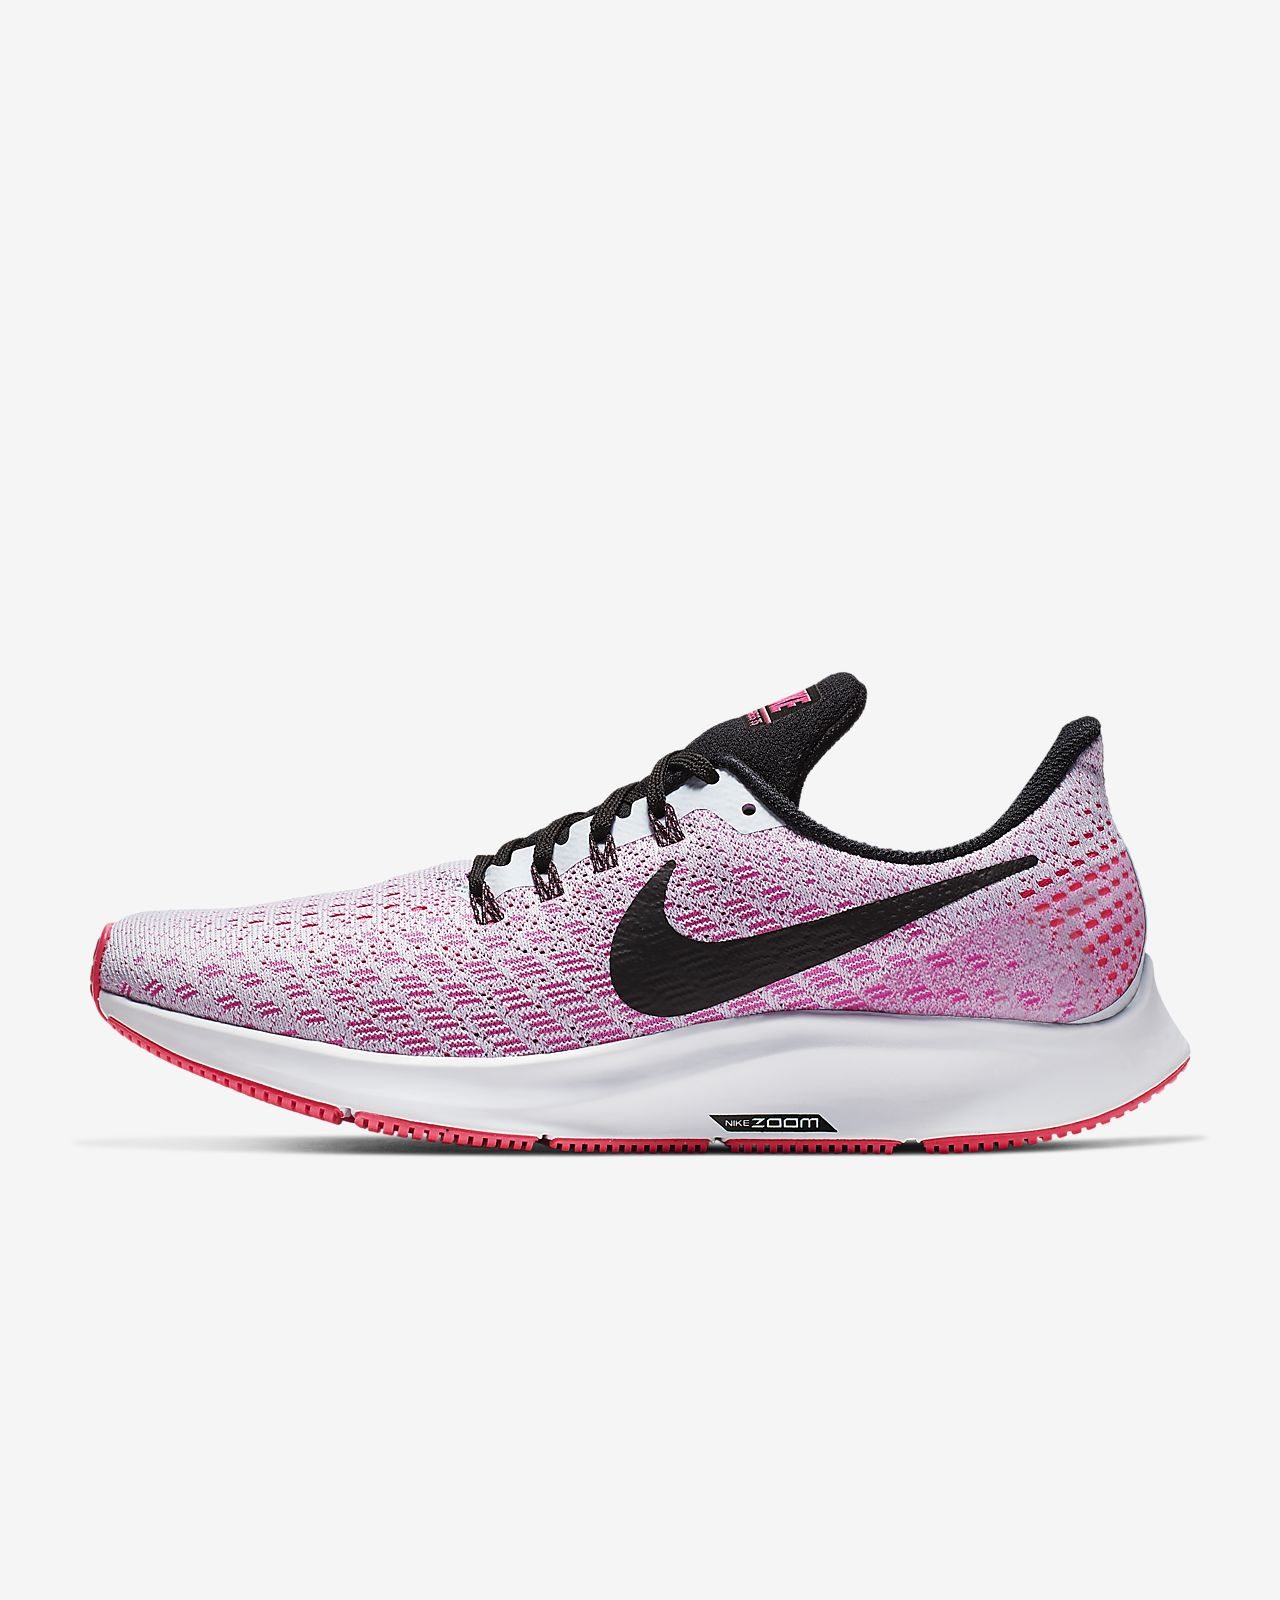 Pointure Nike Tennis Pour Chaussures Homme 39 fYyvb76g